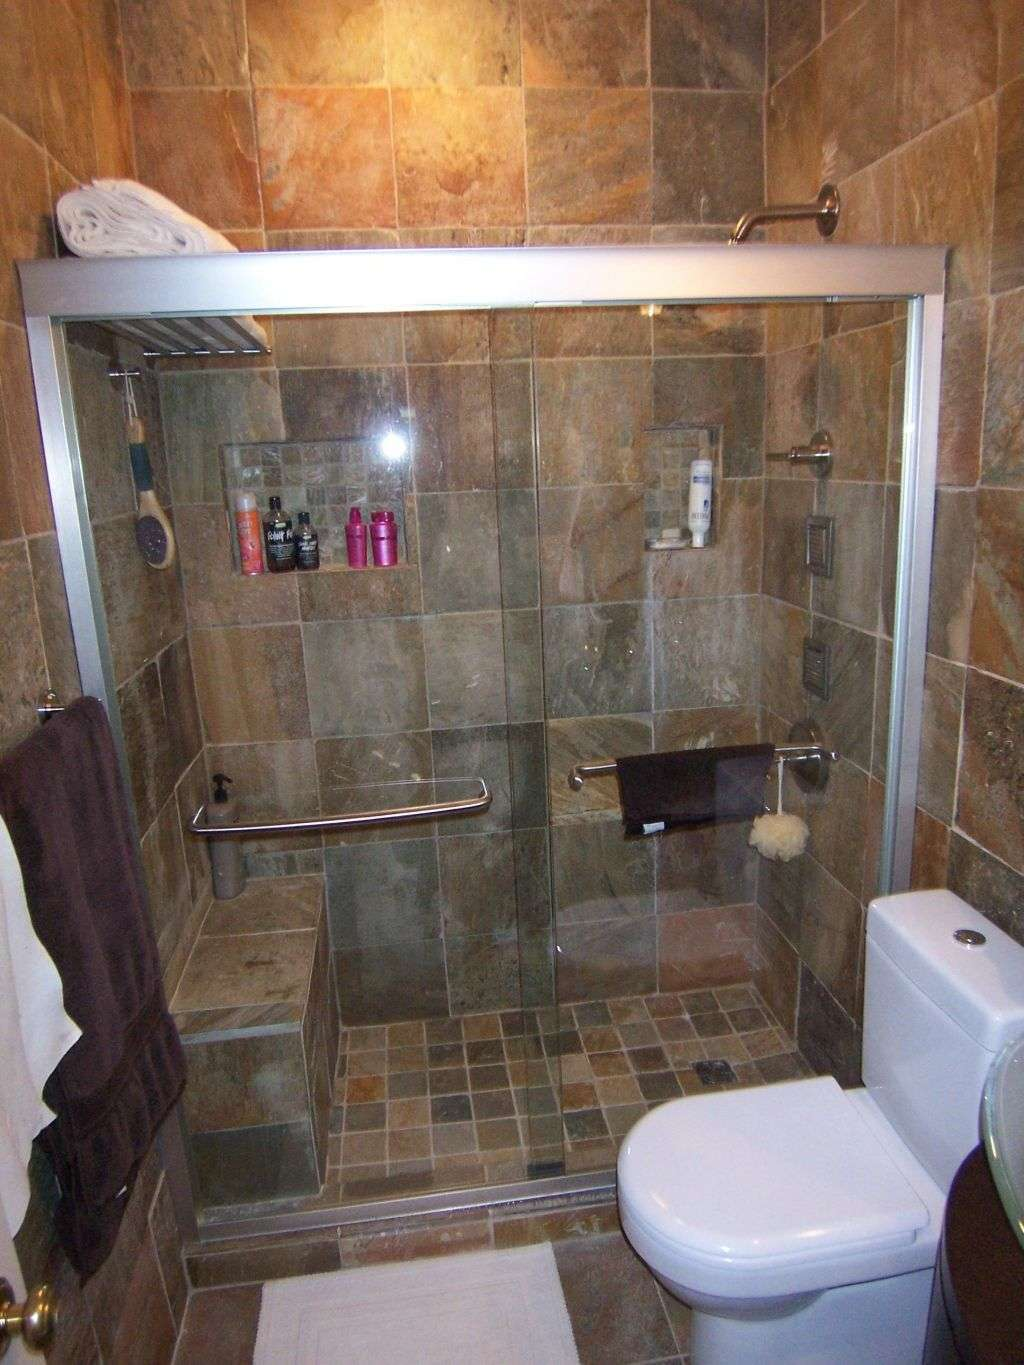 40 wonderful pictures and ideas of 1920s bathroom tile designs for Bathroom tile designs ideas